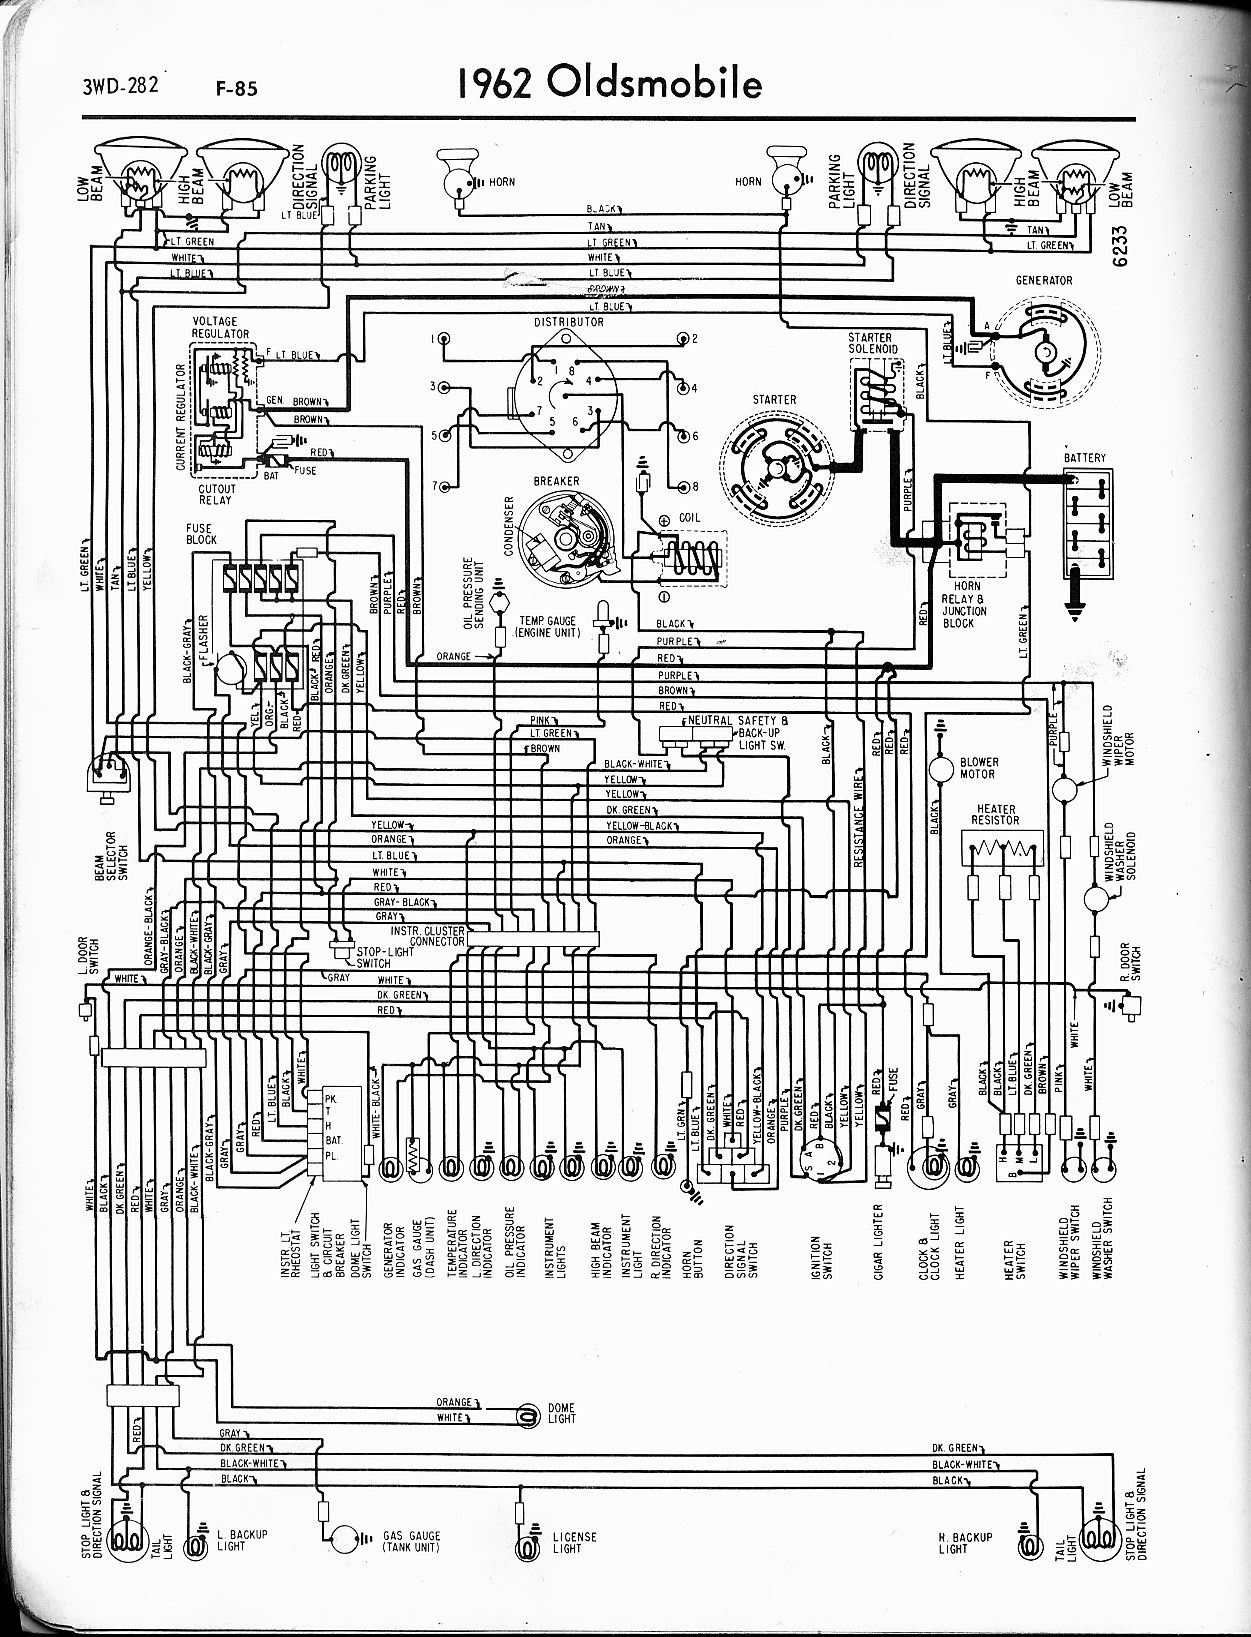 MWire5765 282 oldsmobile wiring diagrams the old car manual project Basic Turn Signal Wiring Diagram at edmiracle.co